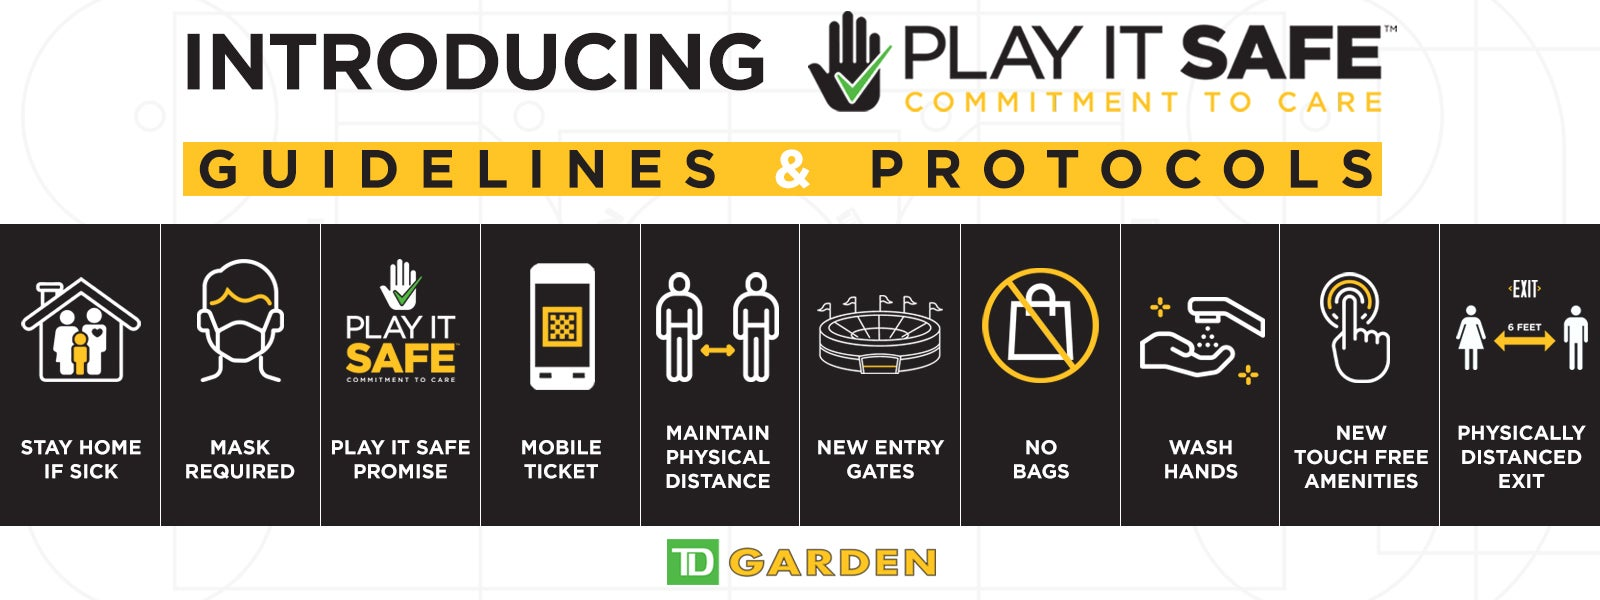 TD Garden Welcomes Return of Fans,  Announces New 'Play It Safe' Guidelines & Protocols